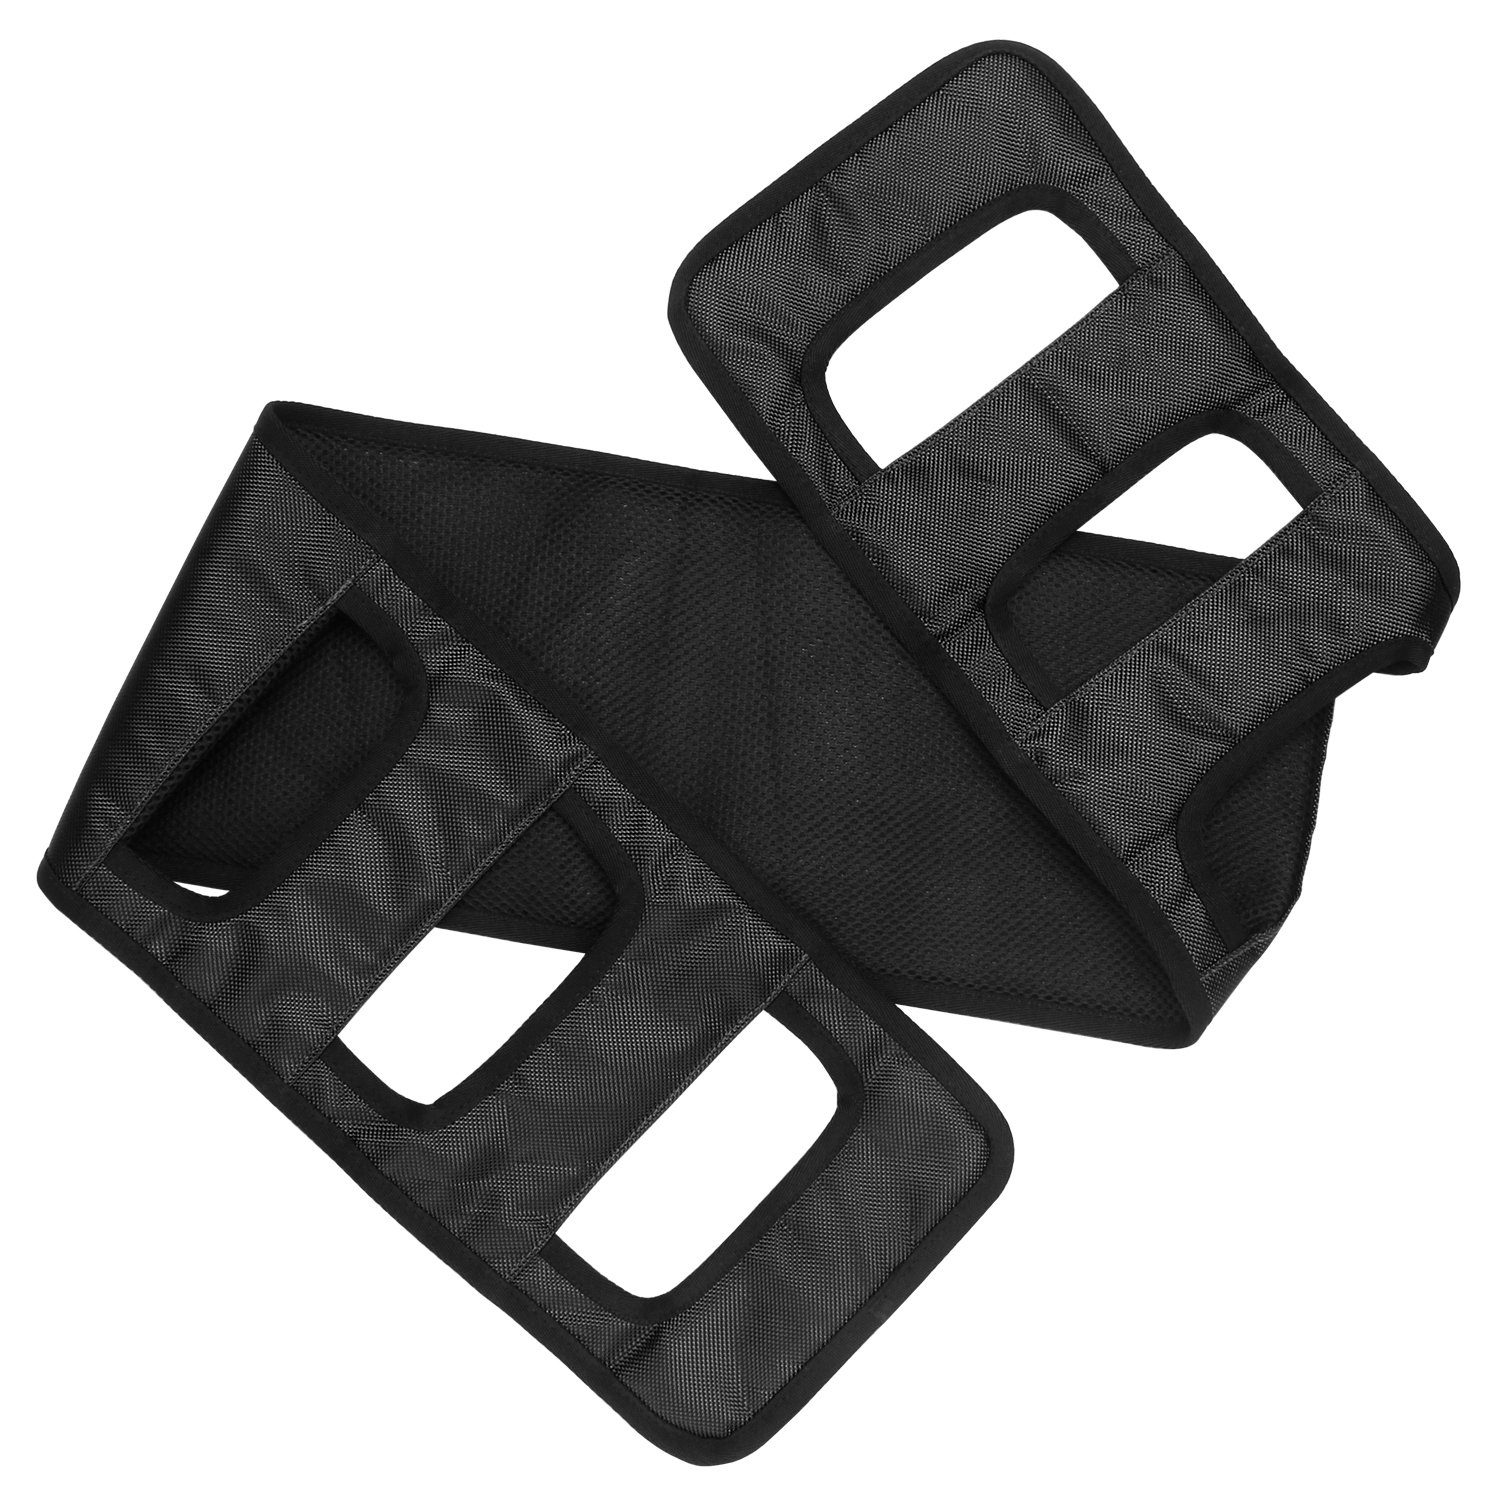 Modudu Transfer Belt Patient Lift Board Belt Transferring Turning Handicap Bariatric Patient Patient Care Safety Mobility Aids Equipment (Black)